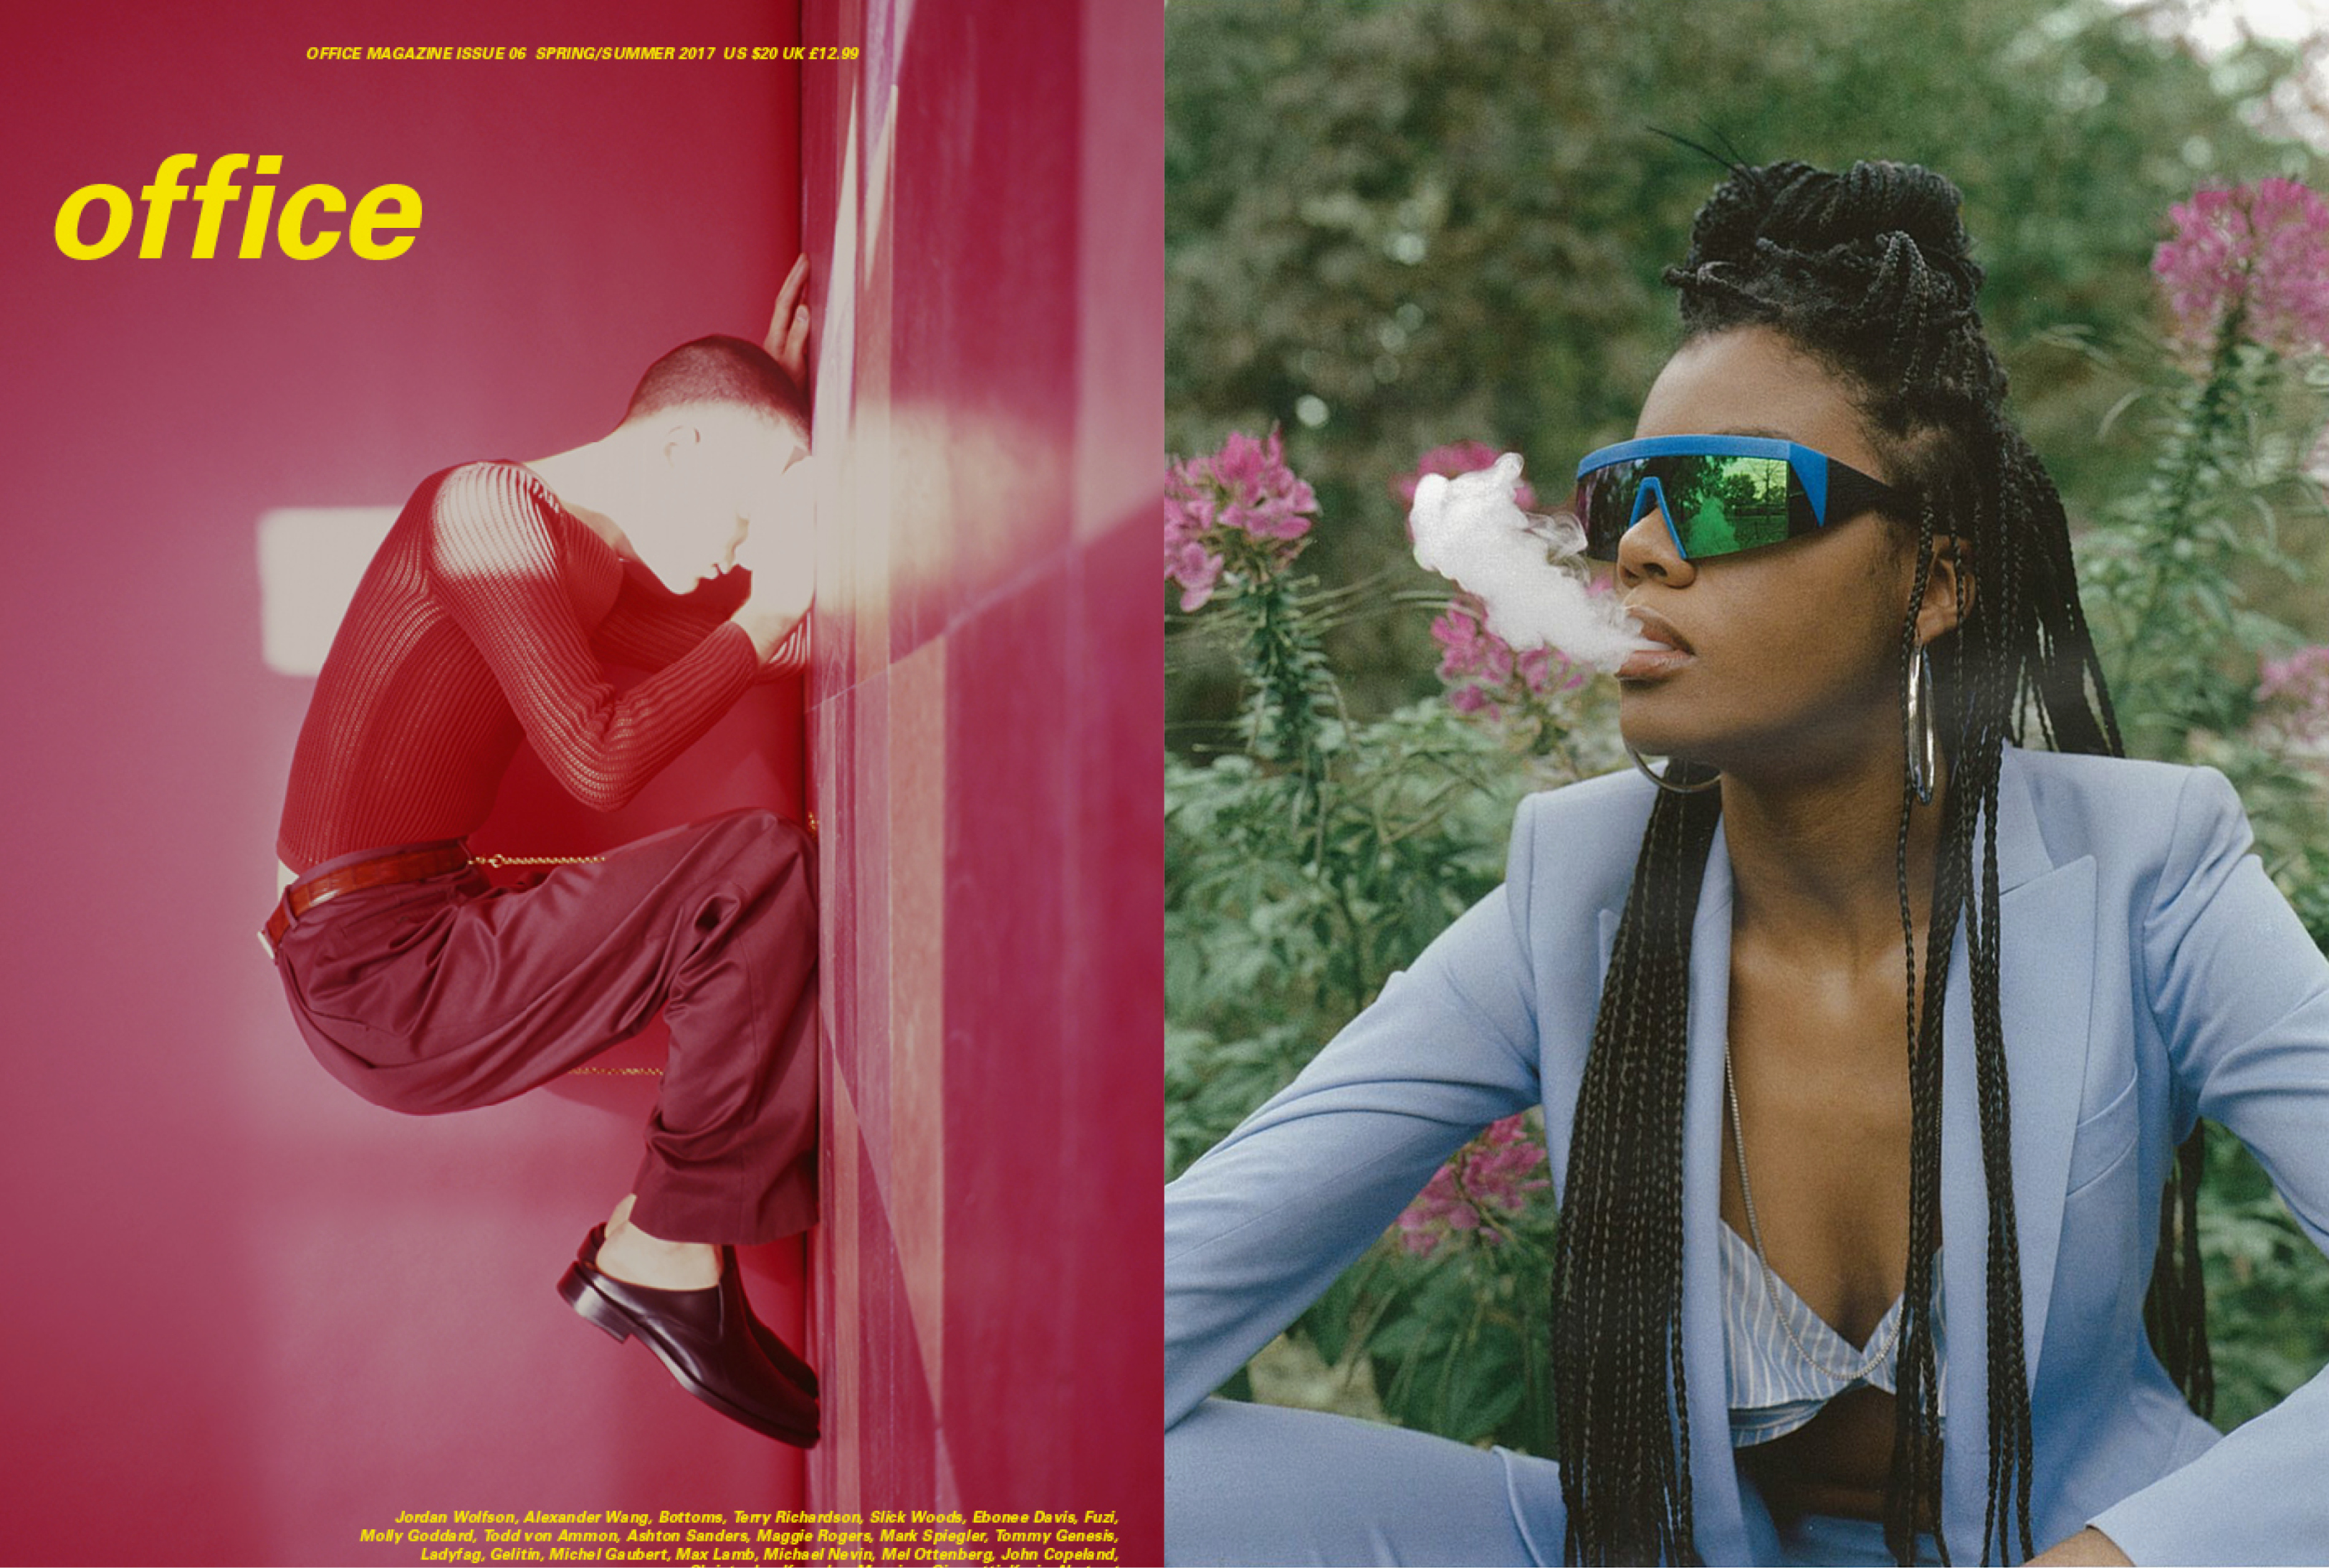 MYKITA & BERNHARD WILLHELM SUNGLASSES VICE FEATURED IN OFFICE US